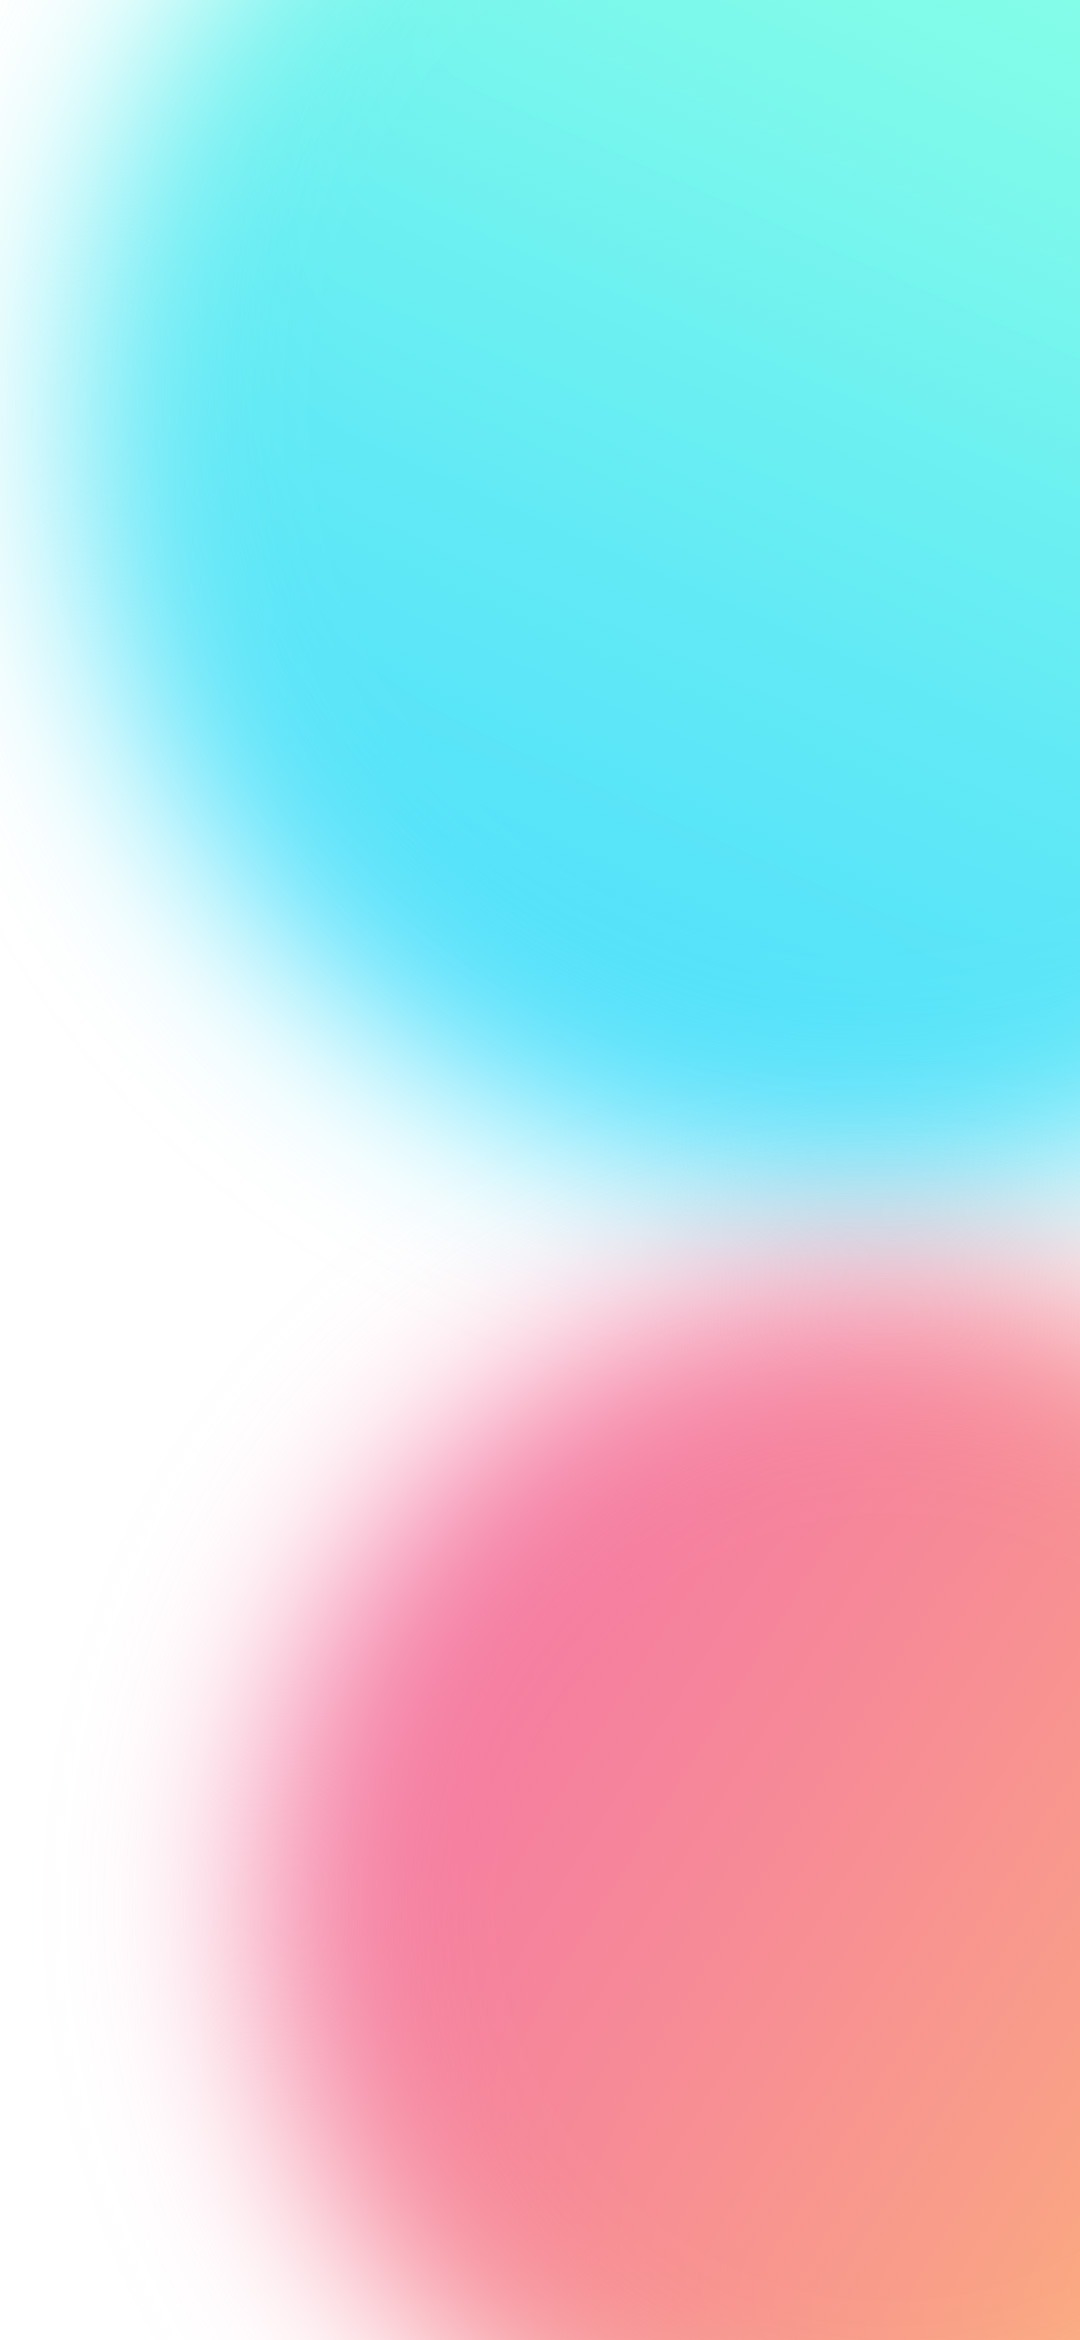 Download Xiaomi Redmi Note 7 Stock Wallpapers - ZIP File Included 4